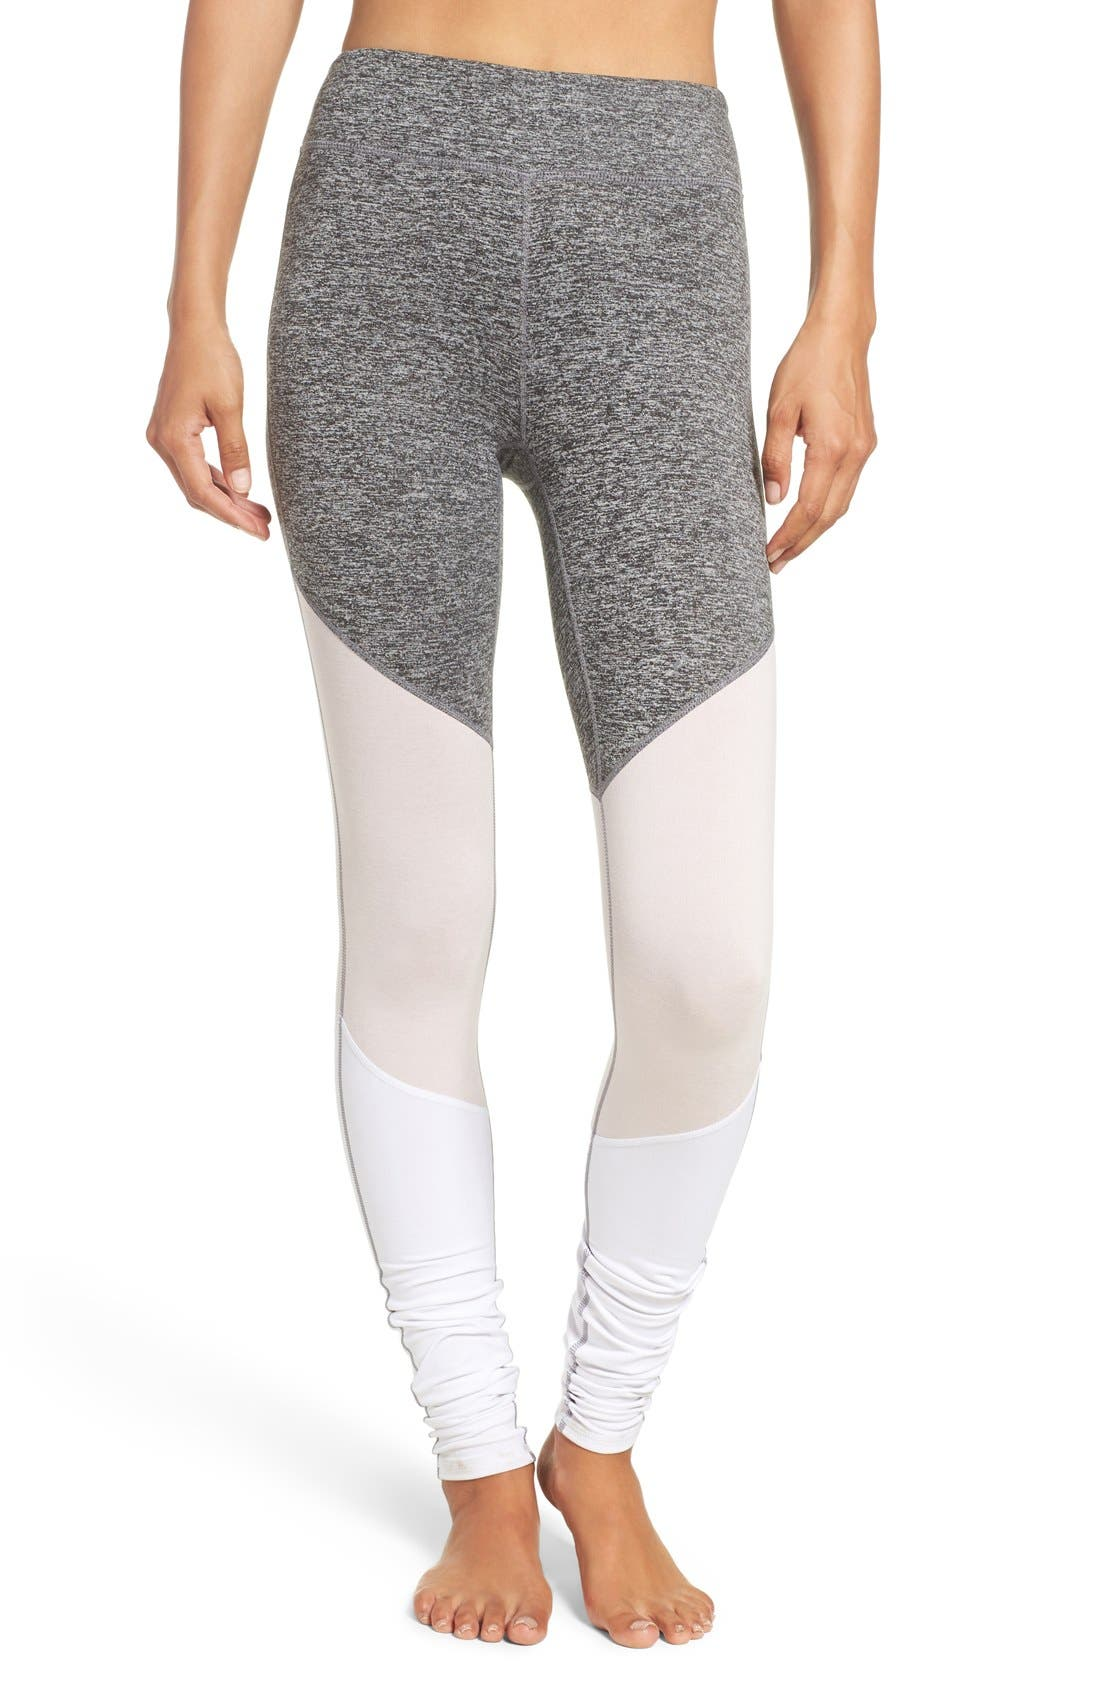 Alternate Image 1 Selected - Free People 'Intuition' High Waist Colorblock Leggings